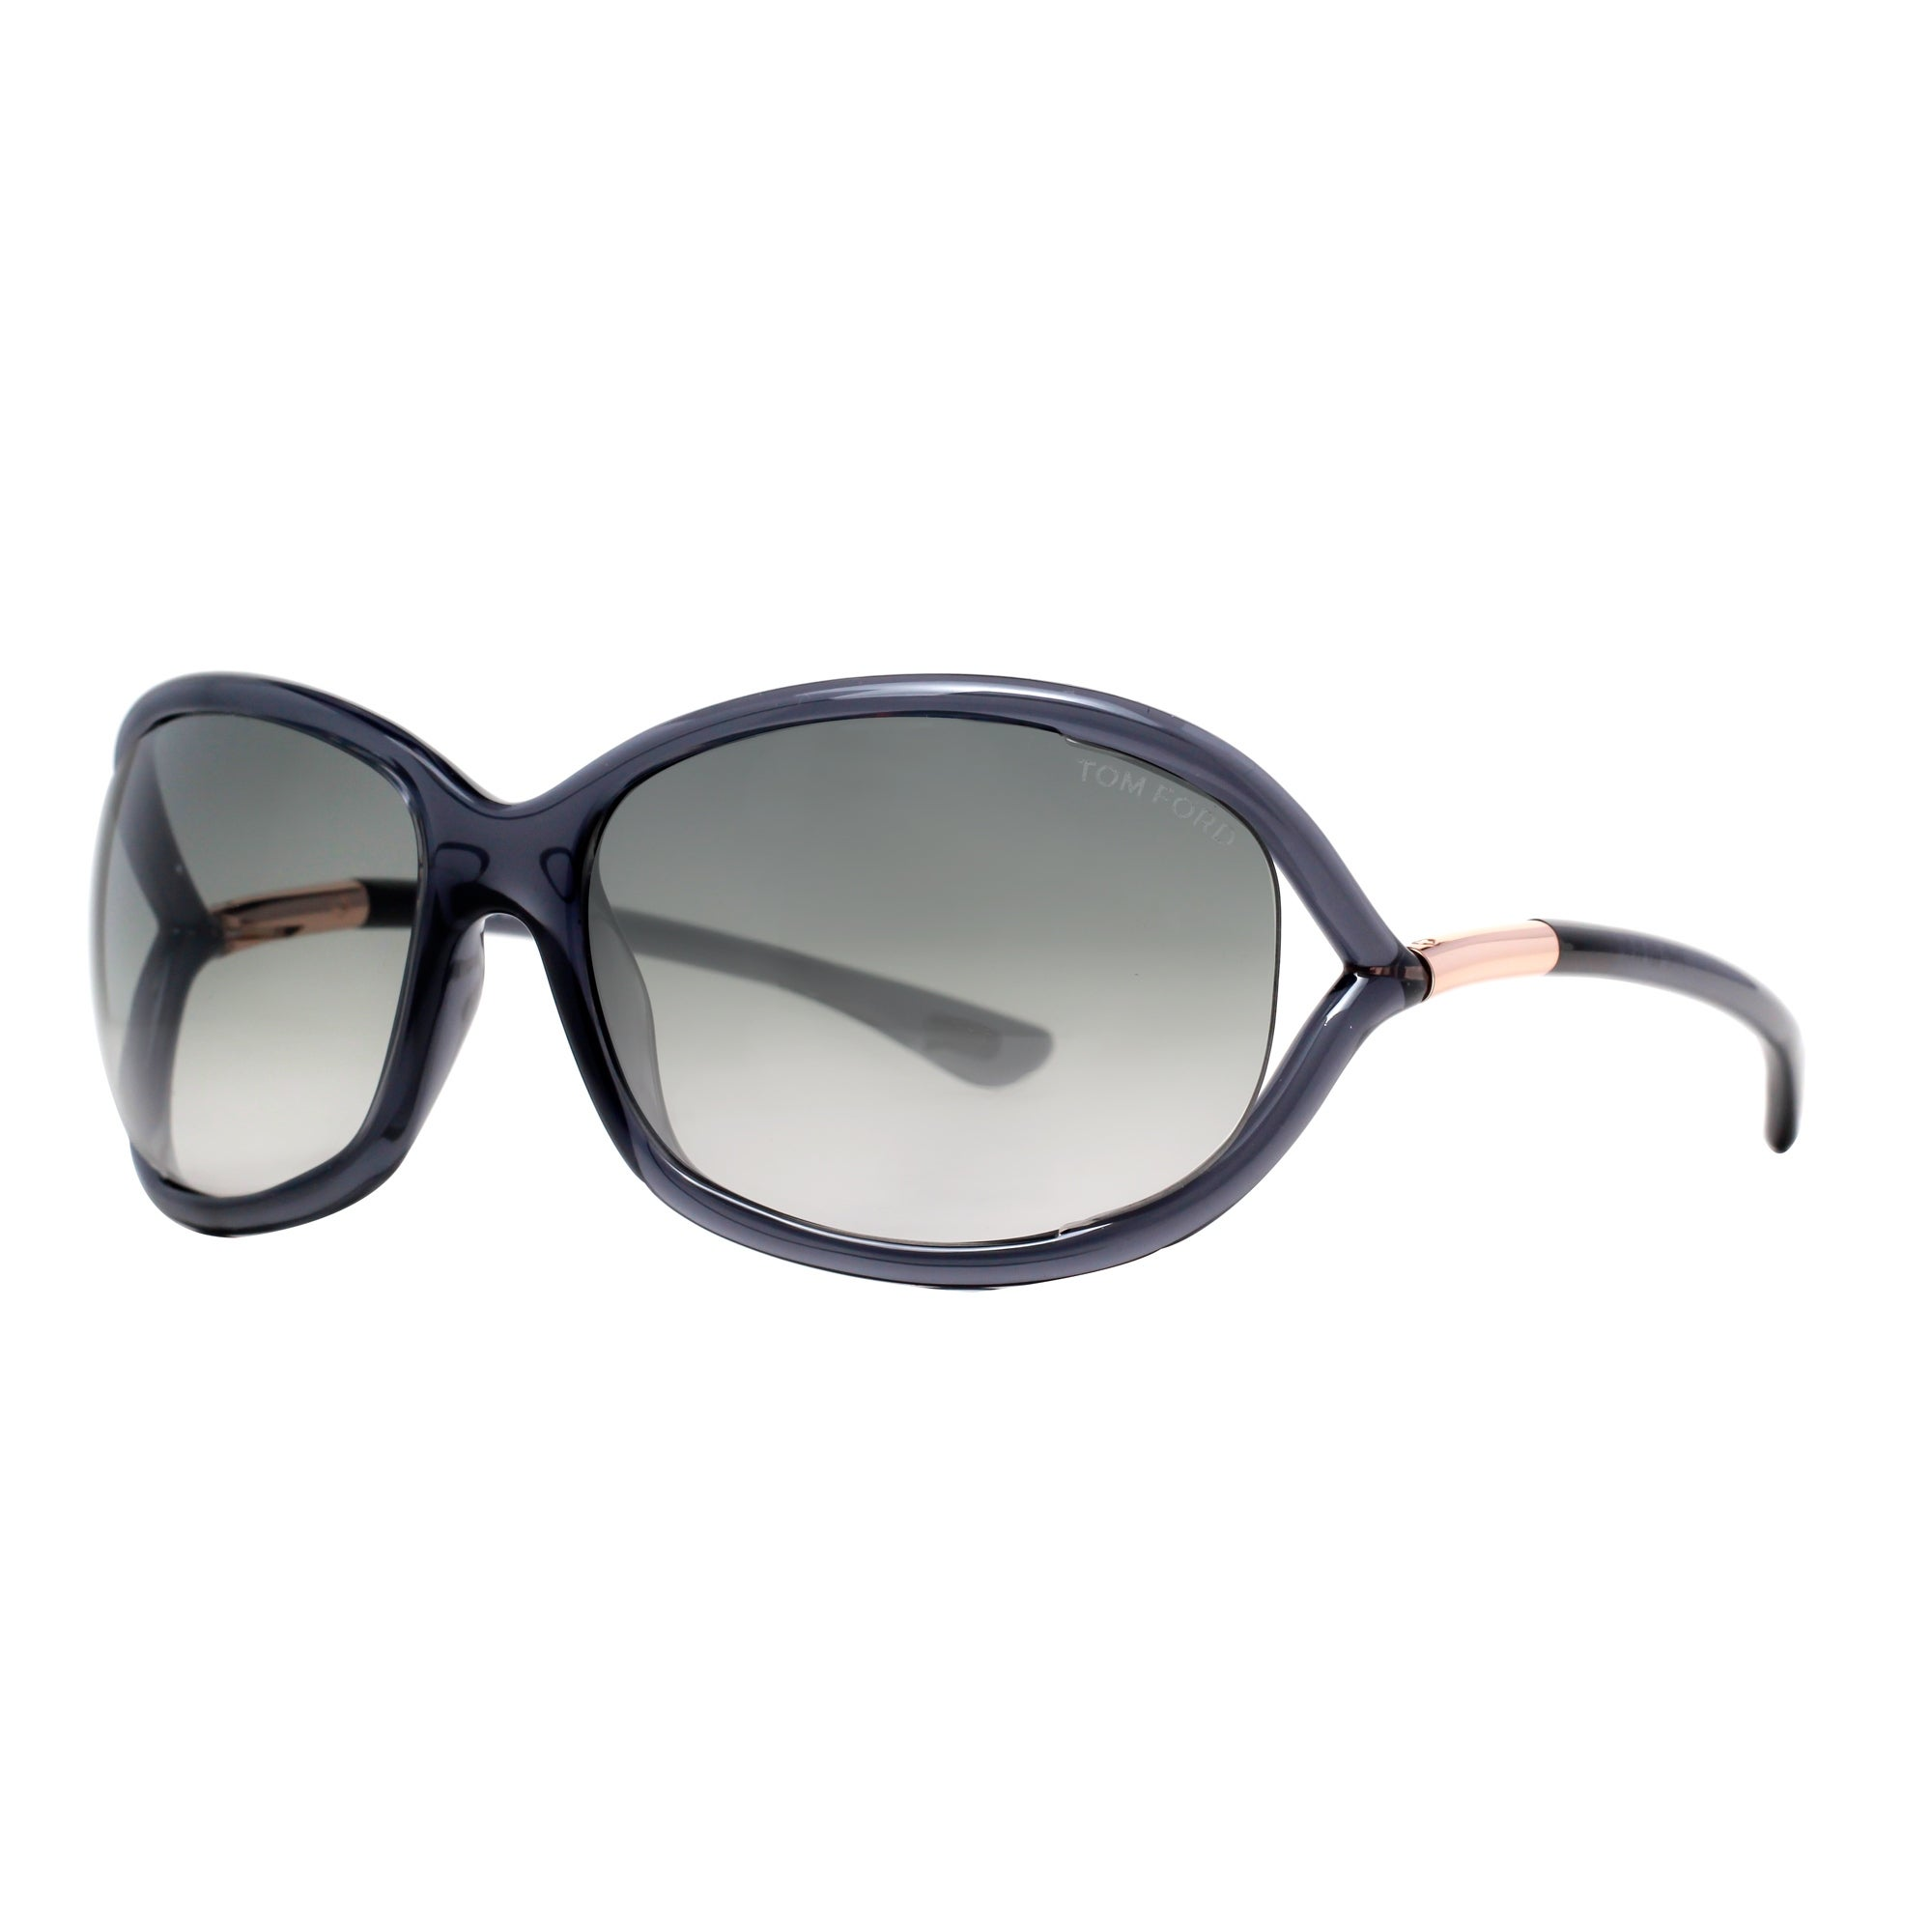 61f8dc3404b Tom Ford Jennifer TF 8 0B5 Transparent Dark Grey Women s Soft Square  Sunglasses - clear gray - 61mm-16mm-120mm